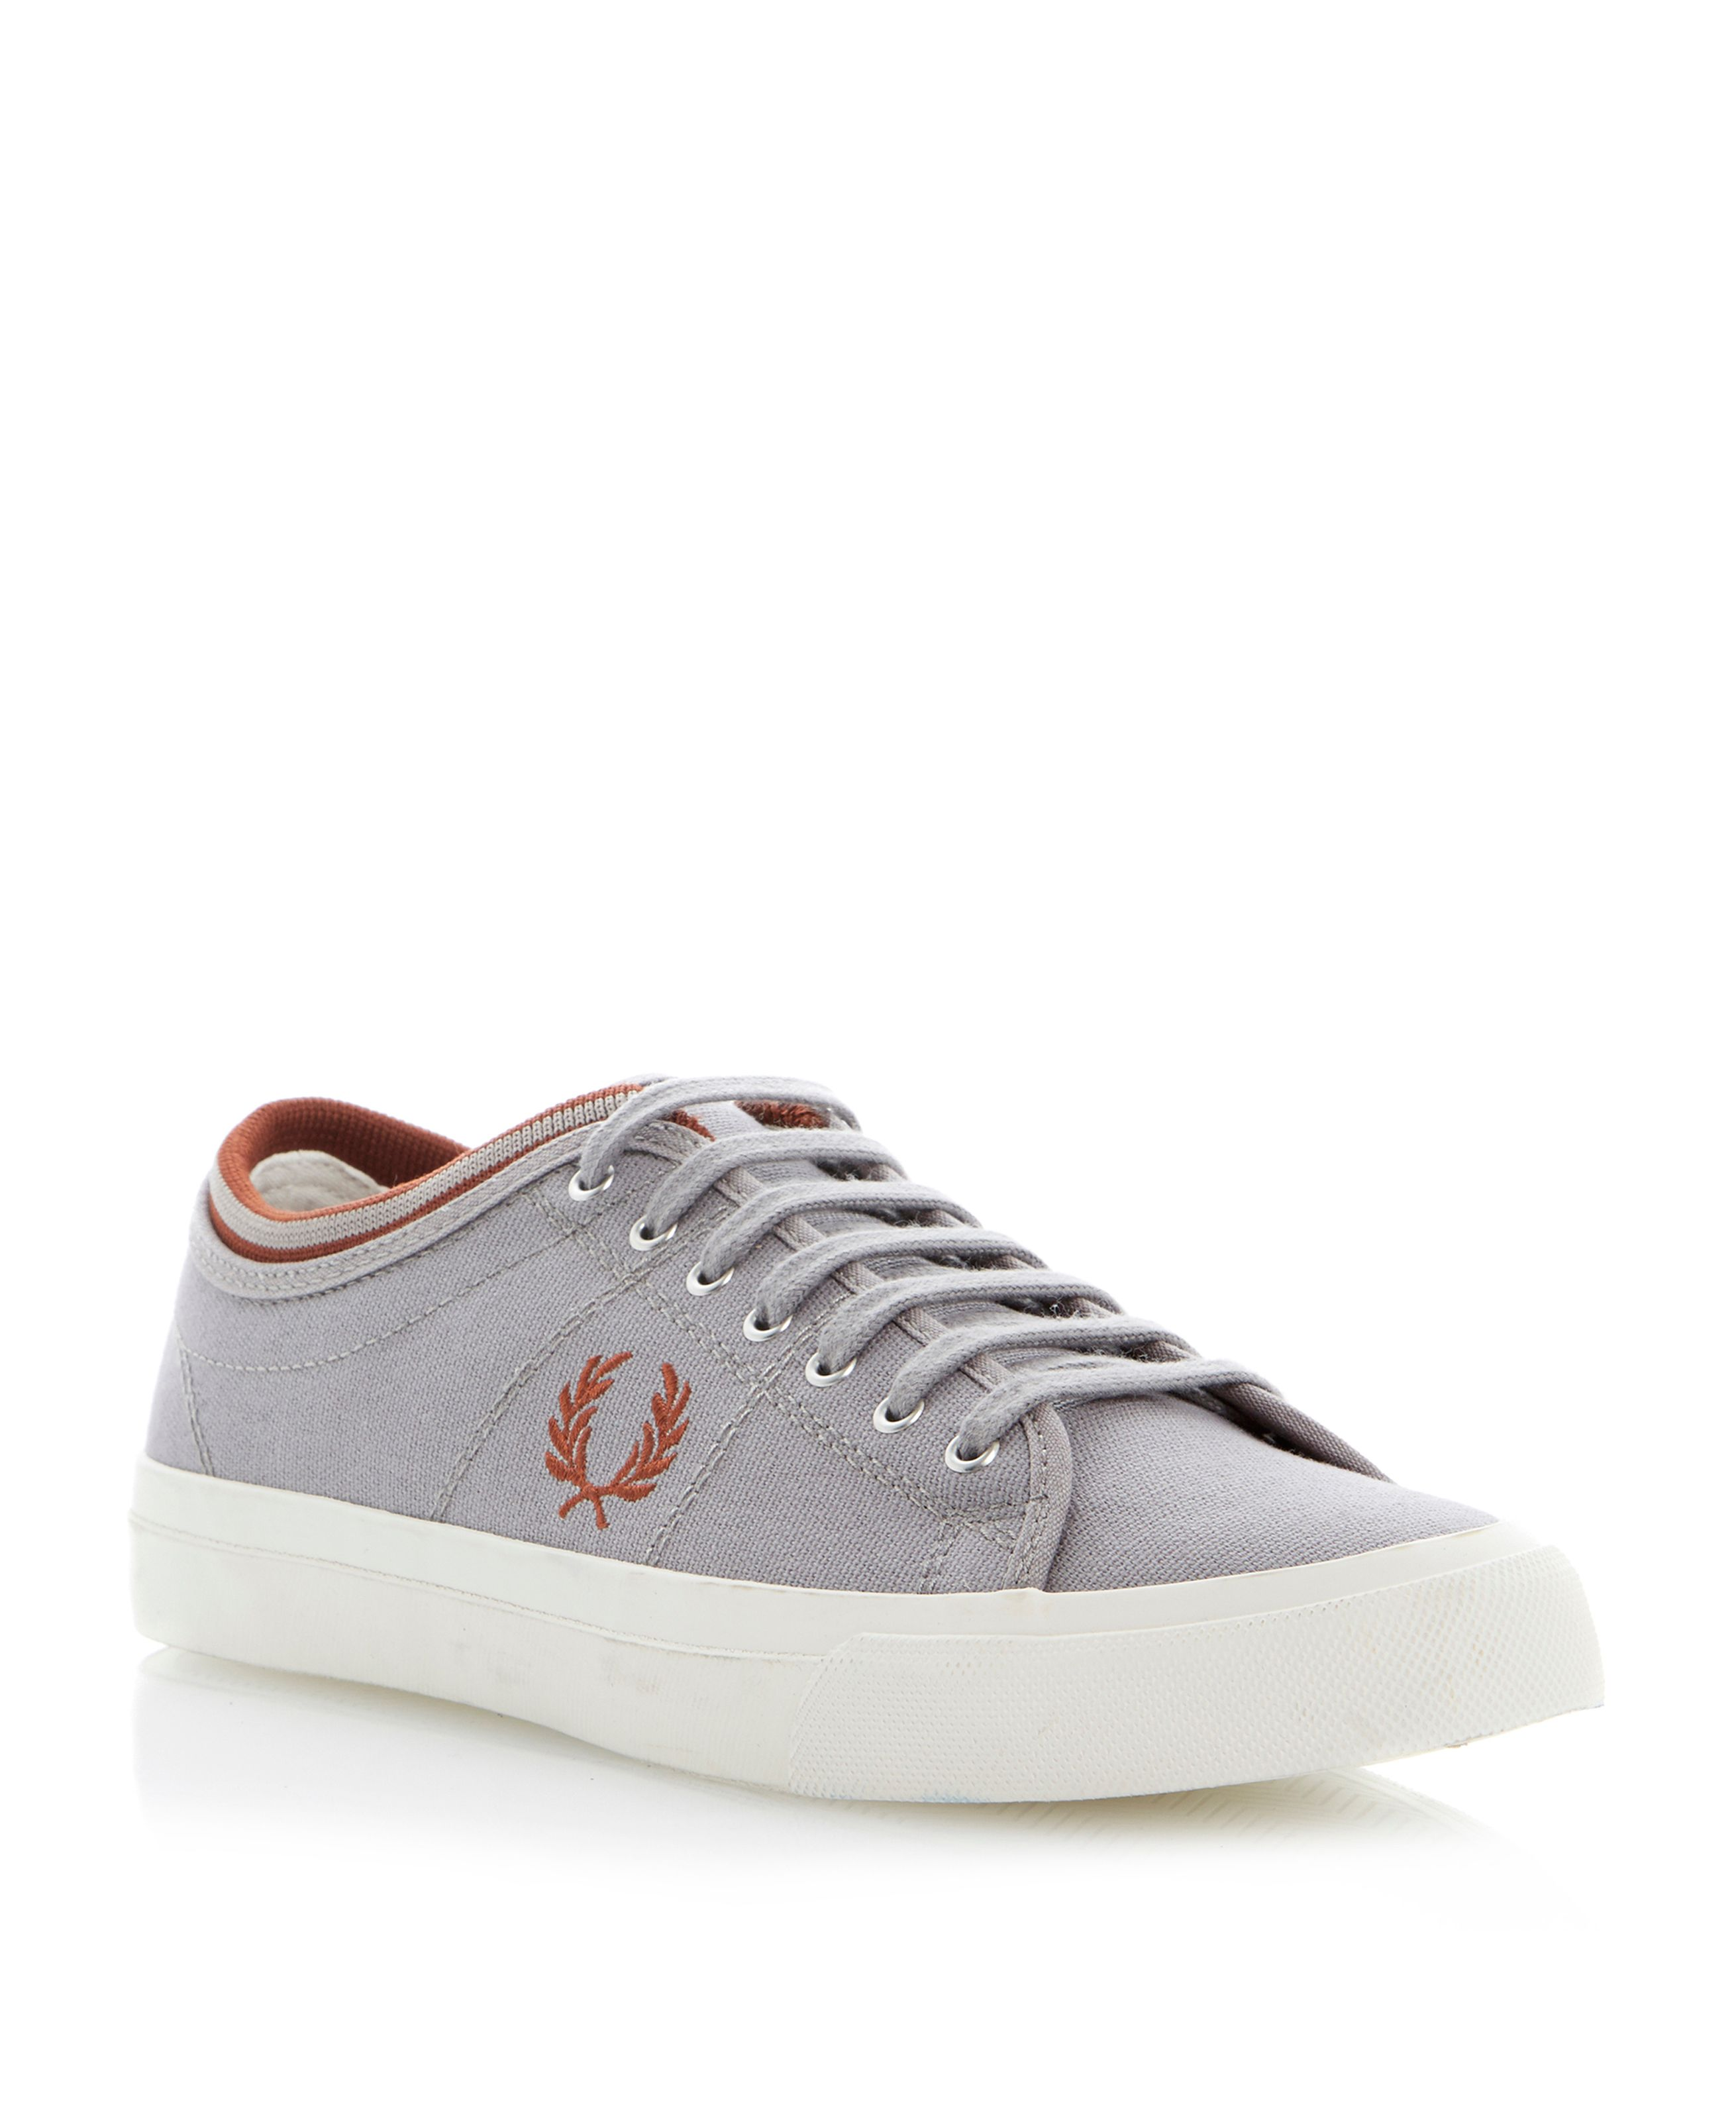 Kendrick tipped cuff lace up trainers